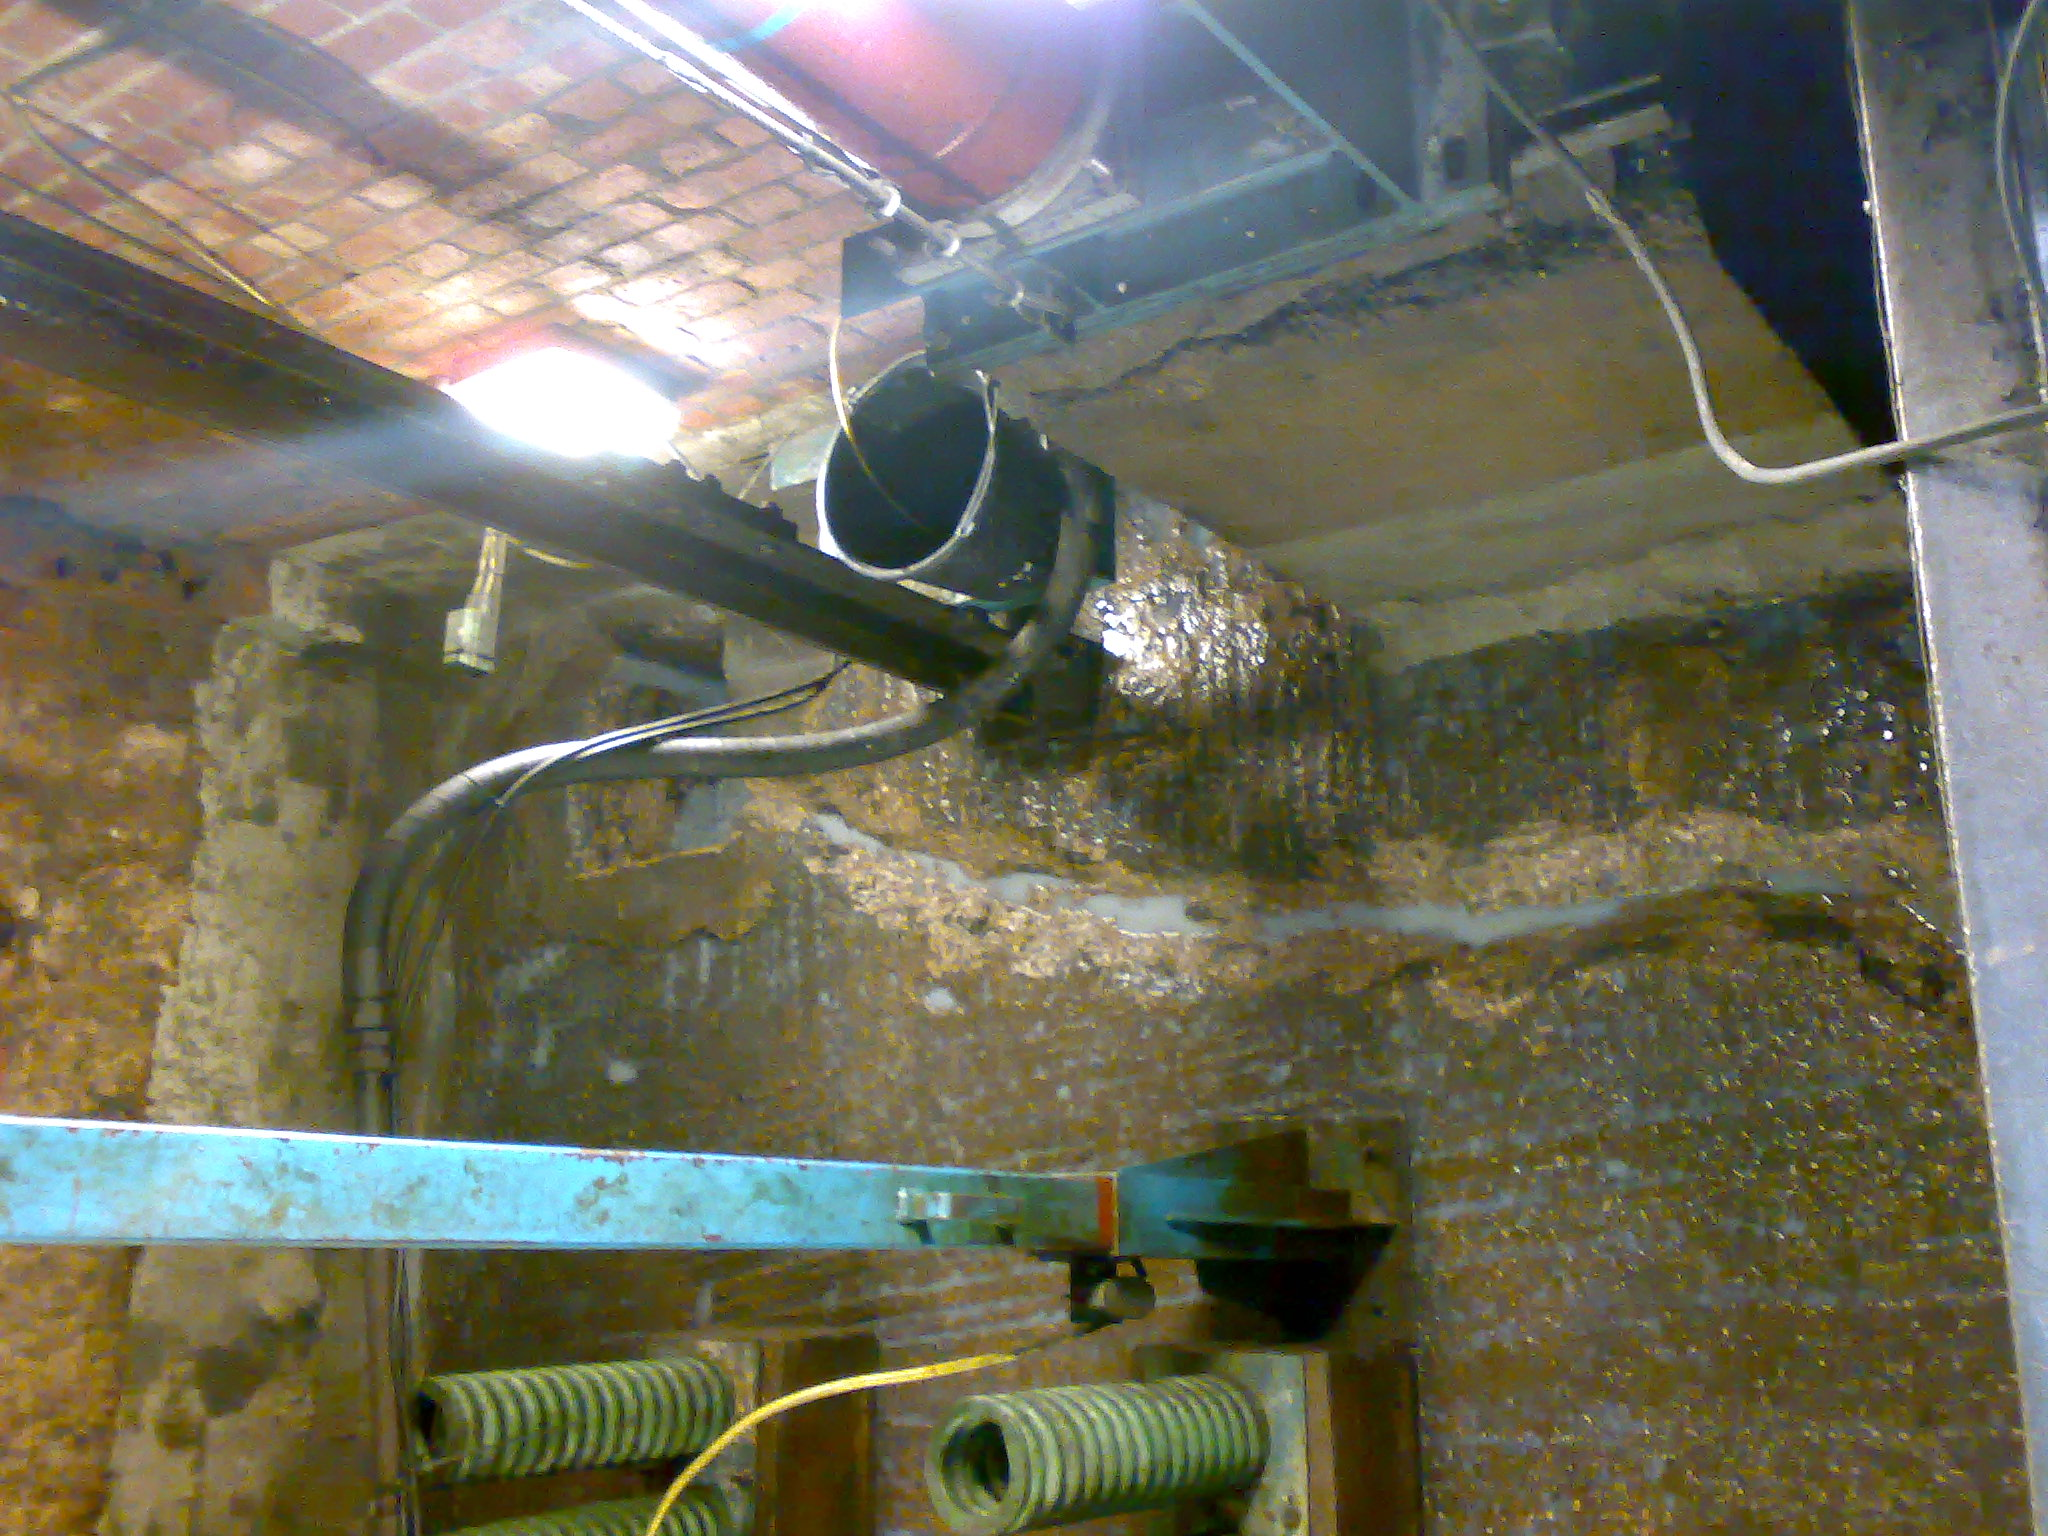 Channels created to move water to sump